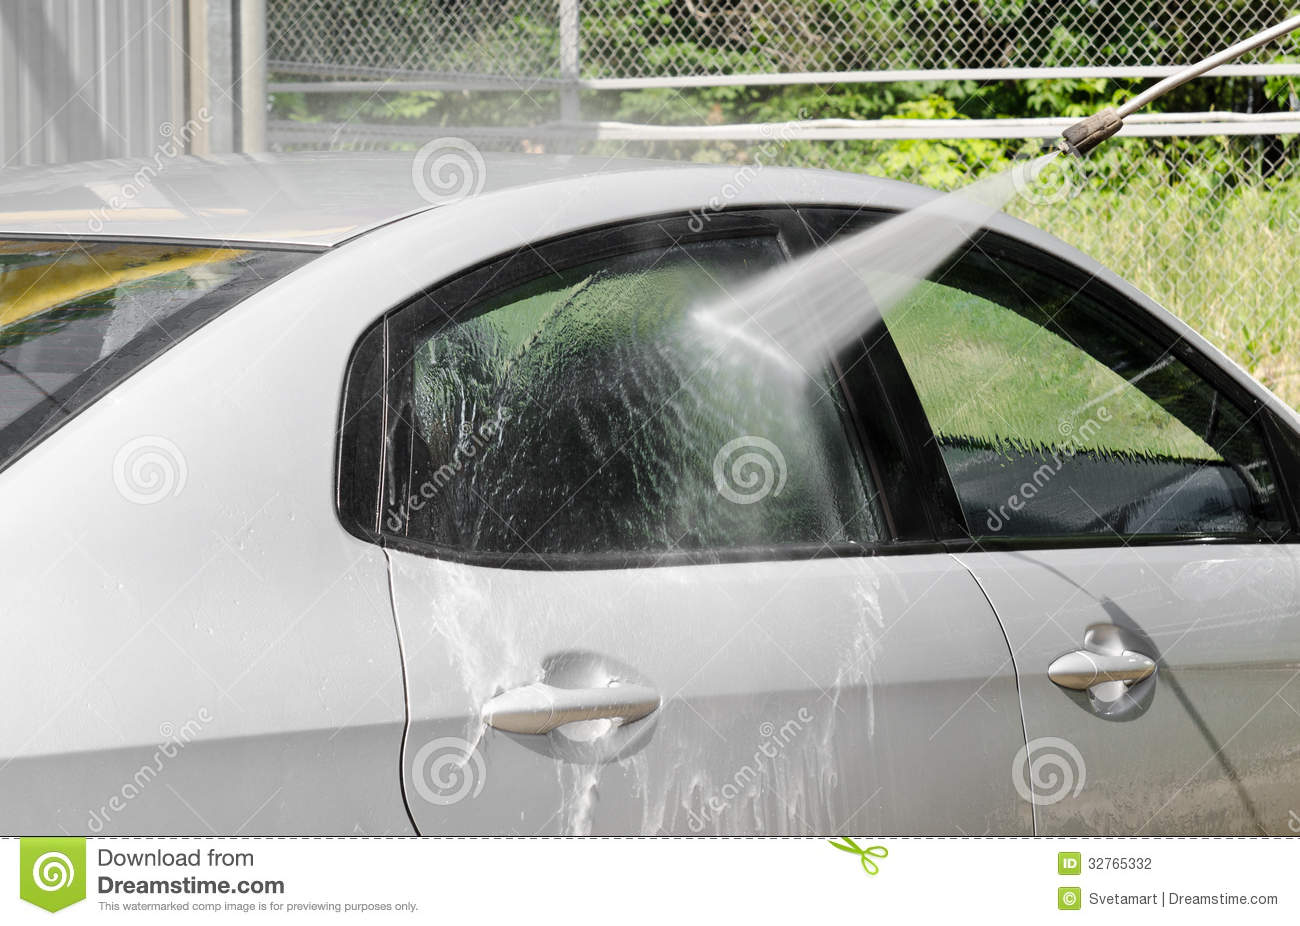 Foam Spray Car Wash >> Manual Car Washing Cleaning With Foam And Pressured Water At Ser Stock Photography - Image: 32765332